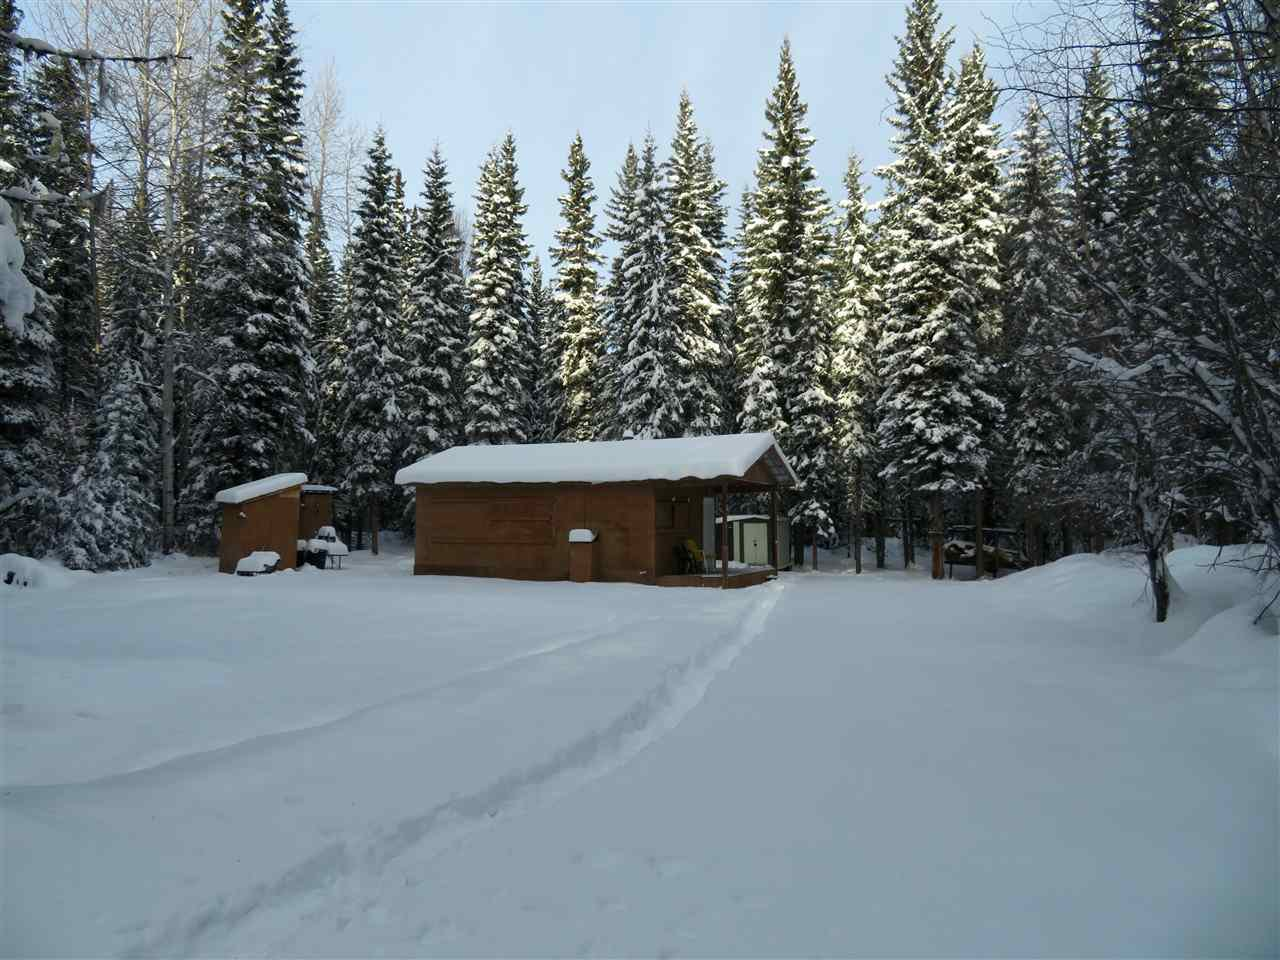 Main Photo: MILE 358 TETSA RIVER ACCESS Road in Fort Nelson: Fort Nelson - Remote House for sale (Fort Nelson (Zone 64))  : MLS®# R2489694